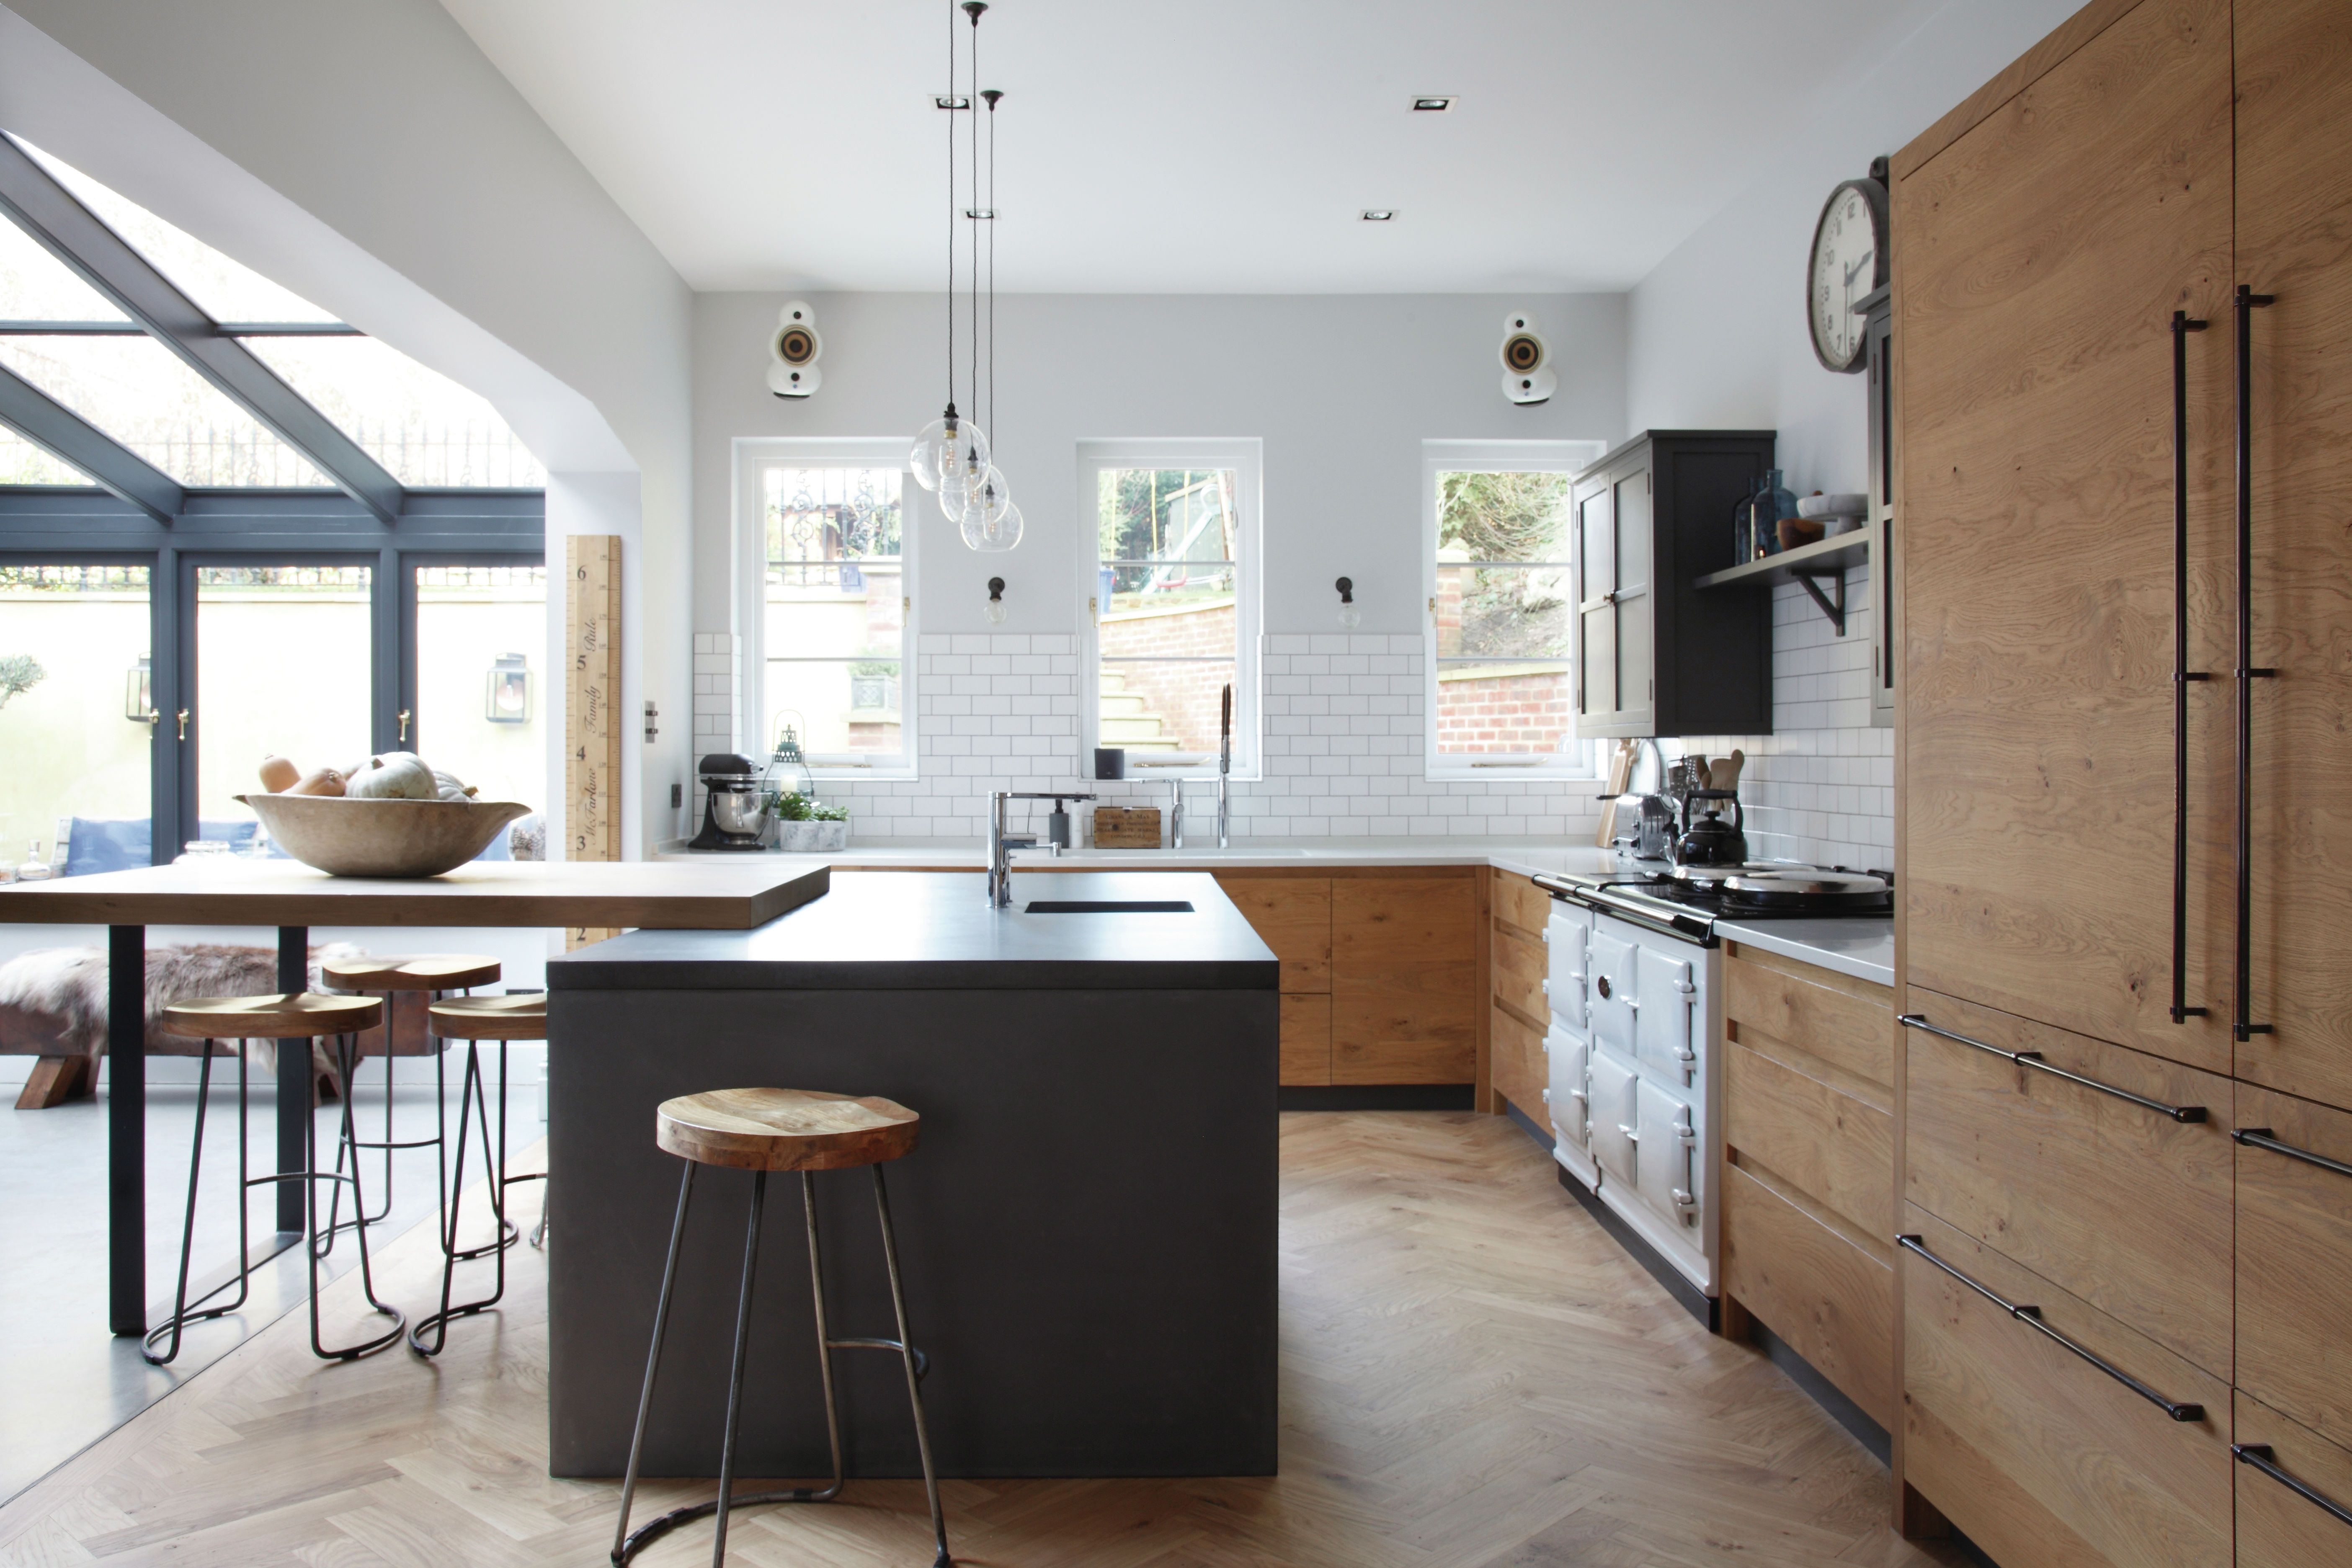 L Shaped Kitchen Designs 11 Ways To Make Your Space Work In 2020 L Shaped Kitchen Designs Kitchen Trends Small Kitchen Diner